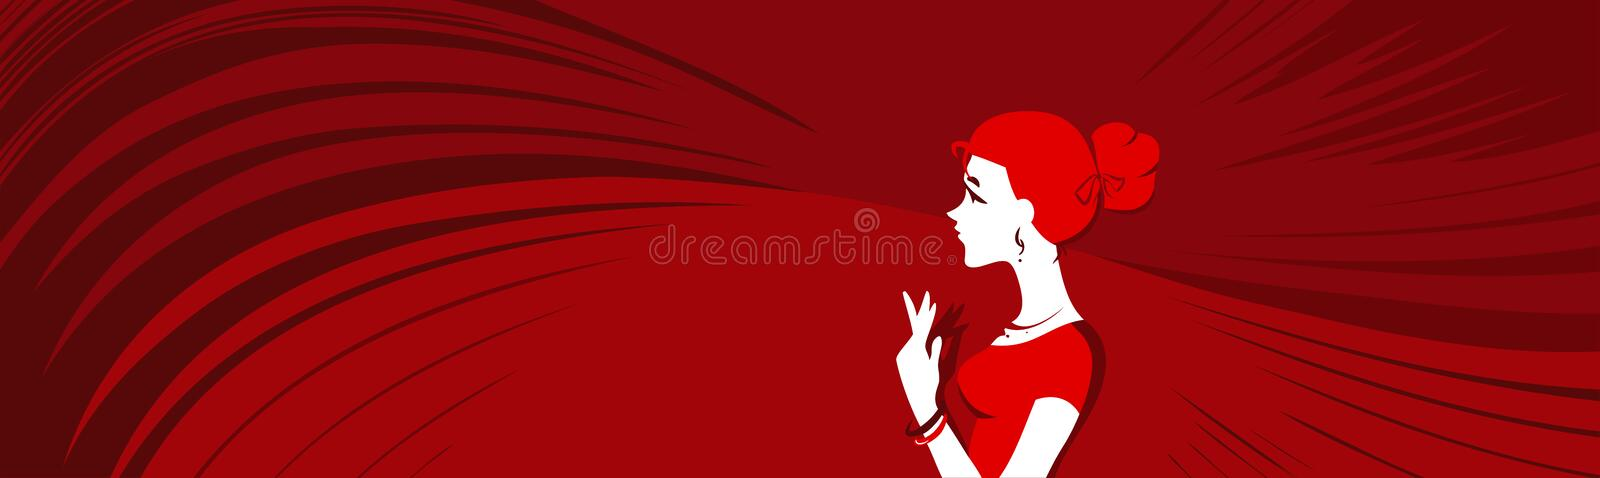 Vector Red Banner Royalty Free Stock Images